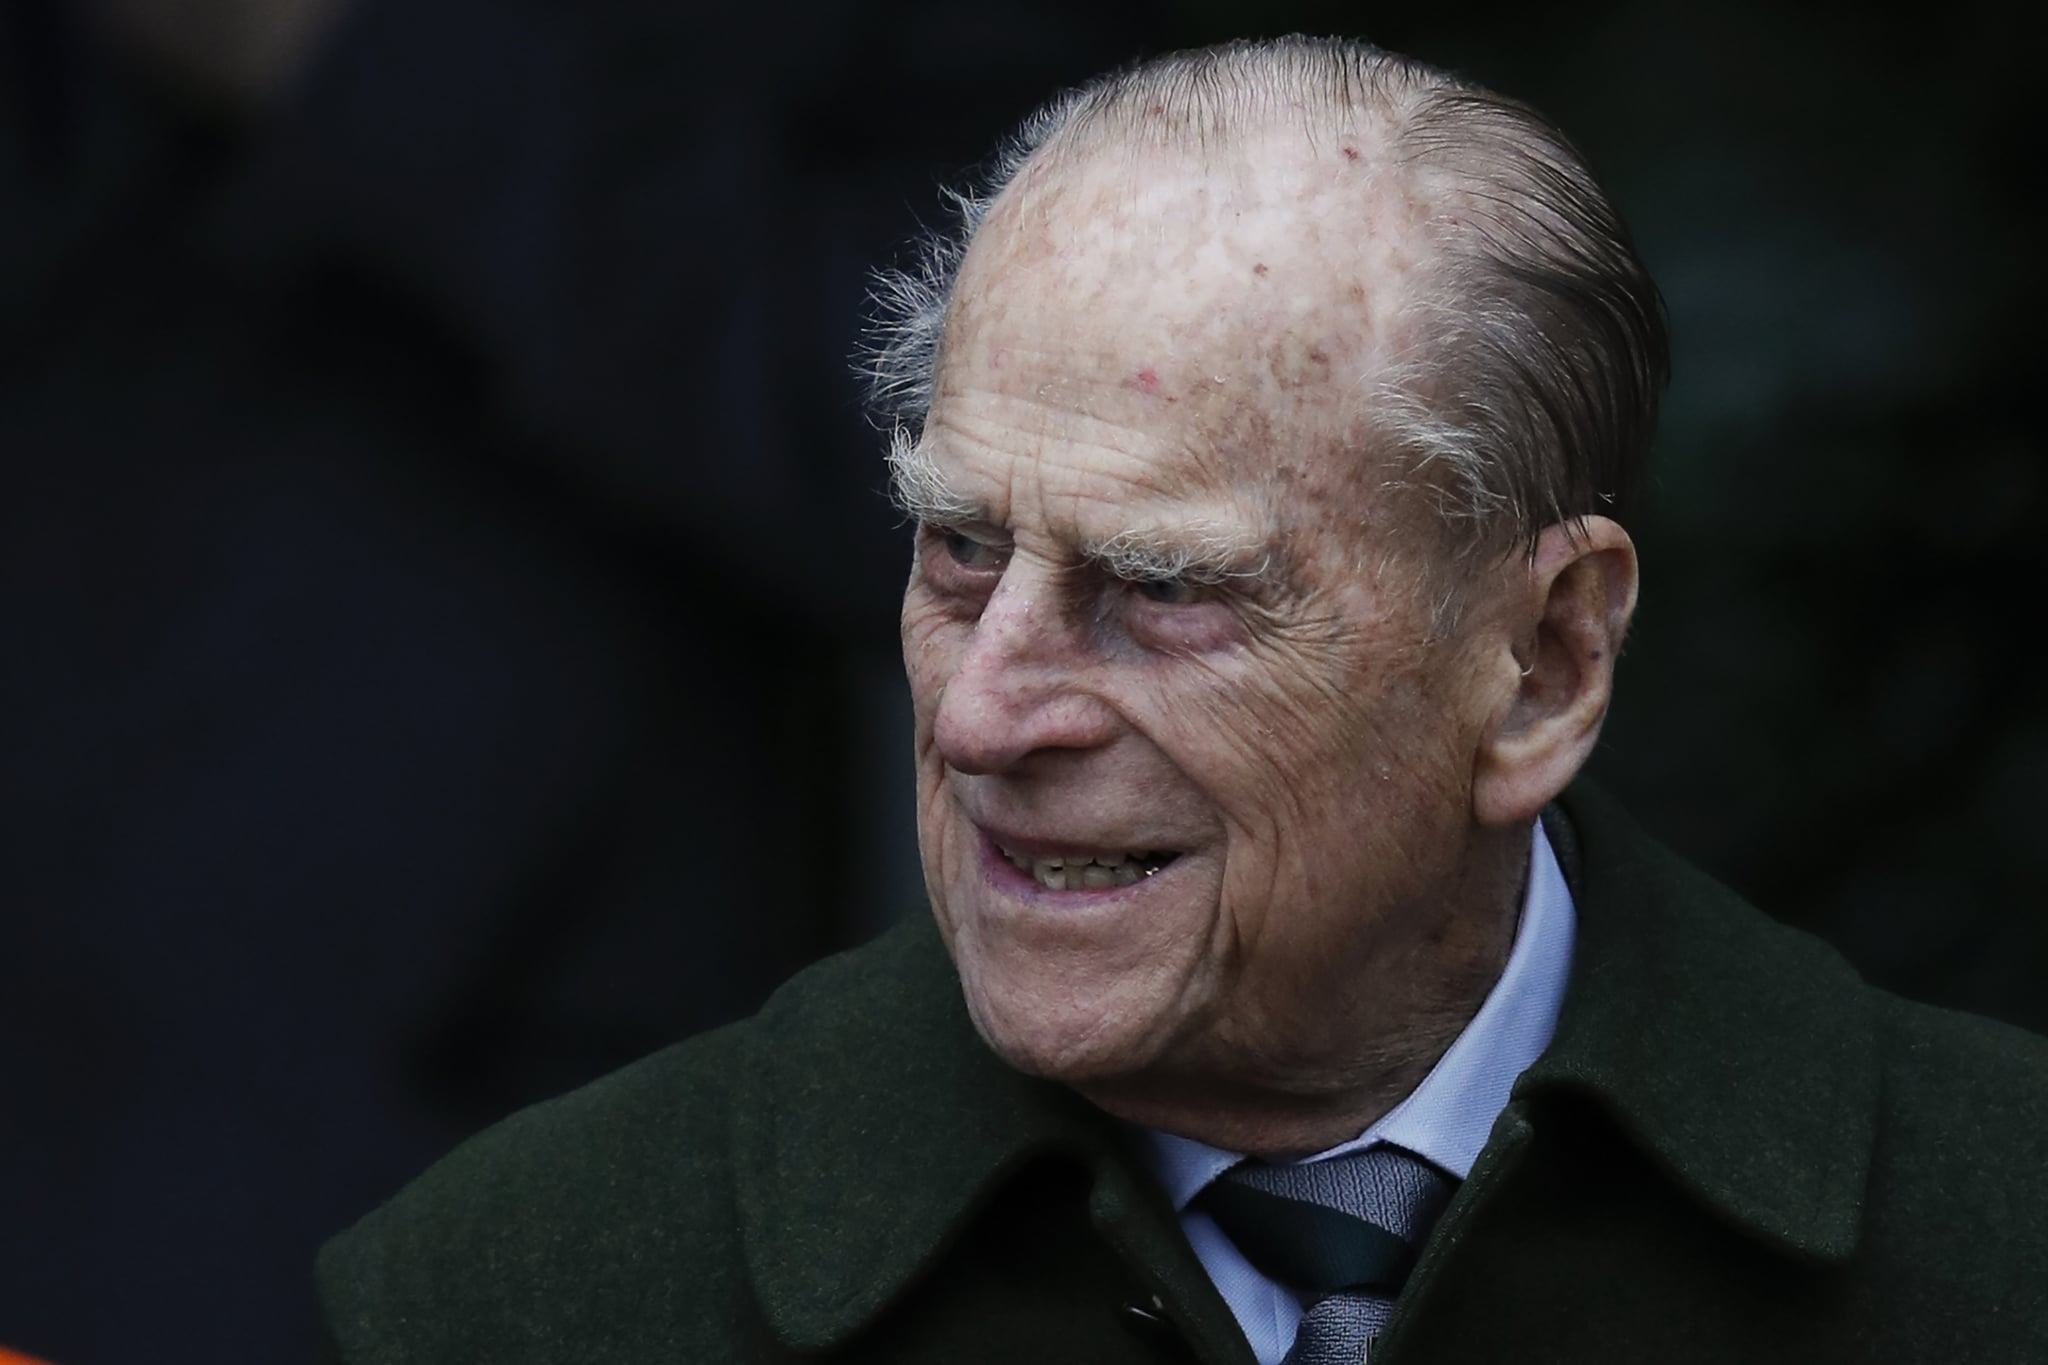 Britain's Prince Philip, Duke of Edinburgh leaves after attending Royal Family's traditional Christmas Day church service at St Mary Magdalene Church in Sandringham, Norfolk, eastern England, on December 25, 2017. / AFP PHOTO / Adrian DENNIS        (Photo credit should read ADRIAN DENNIS/AFP/Getty Images)